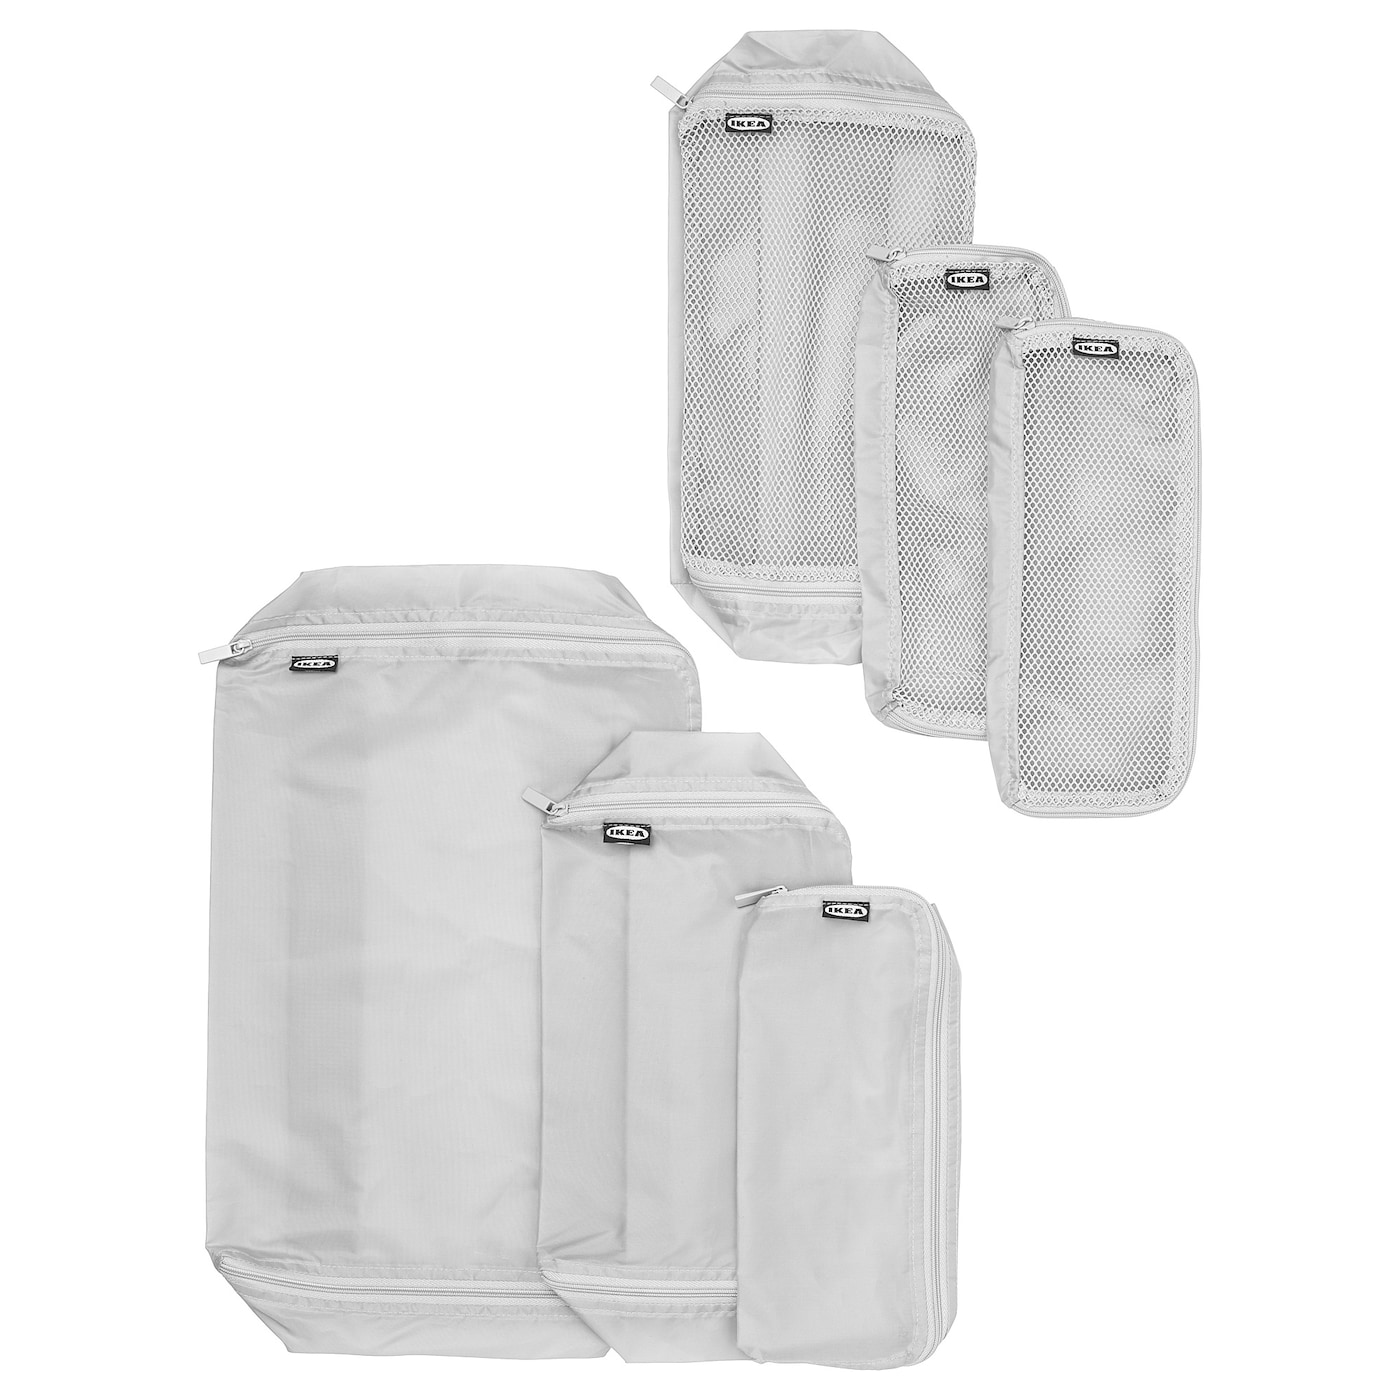 IKEA FÖRFINA sac, lot de 6